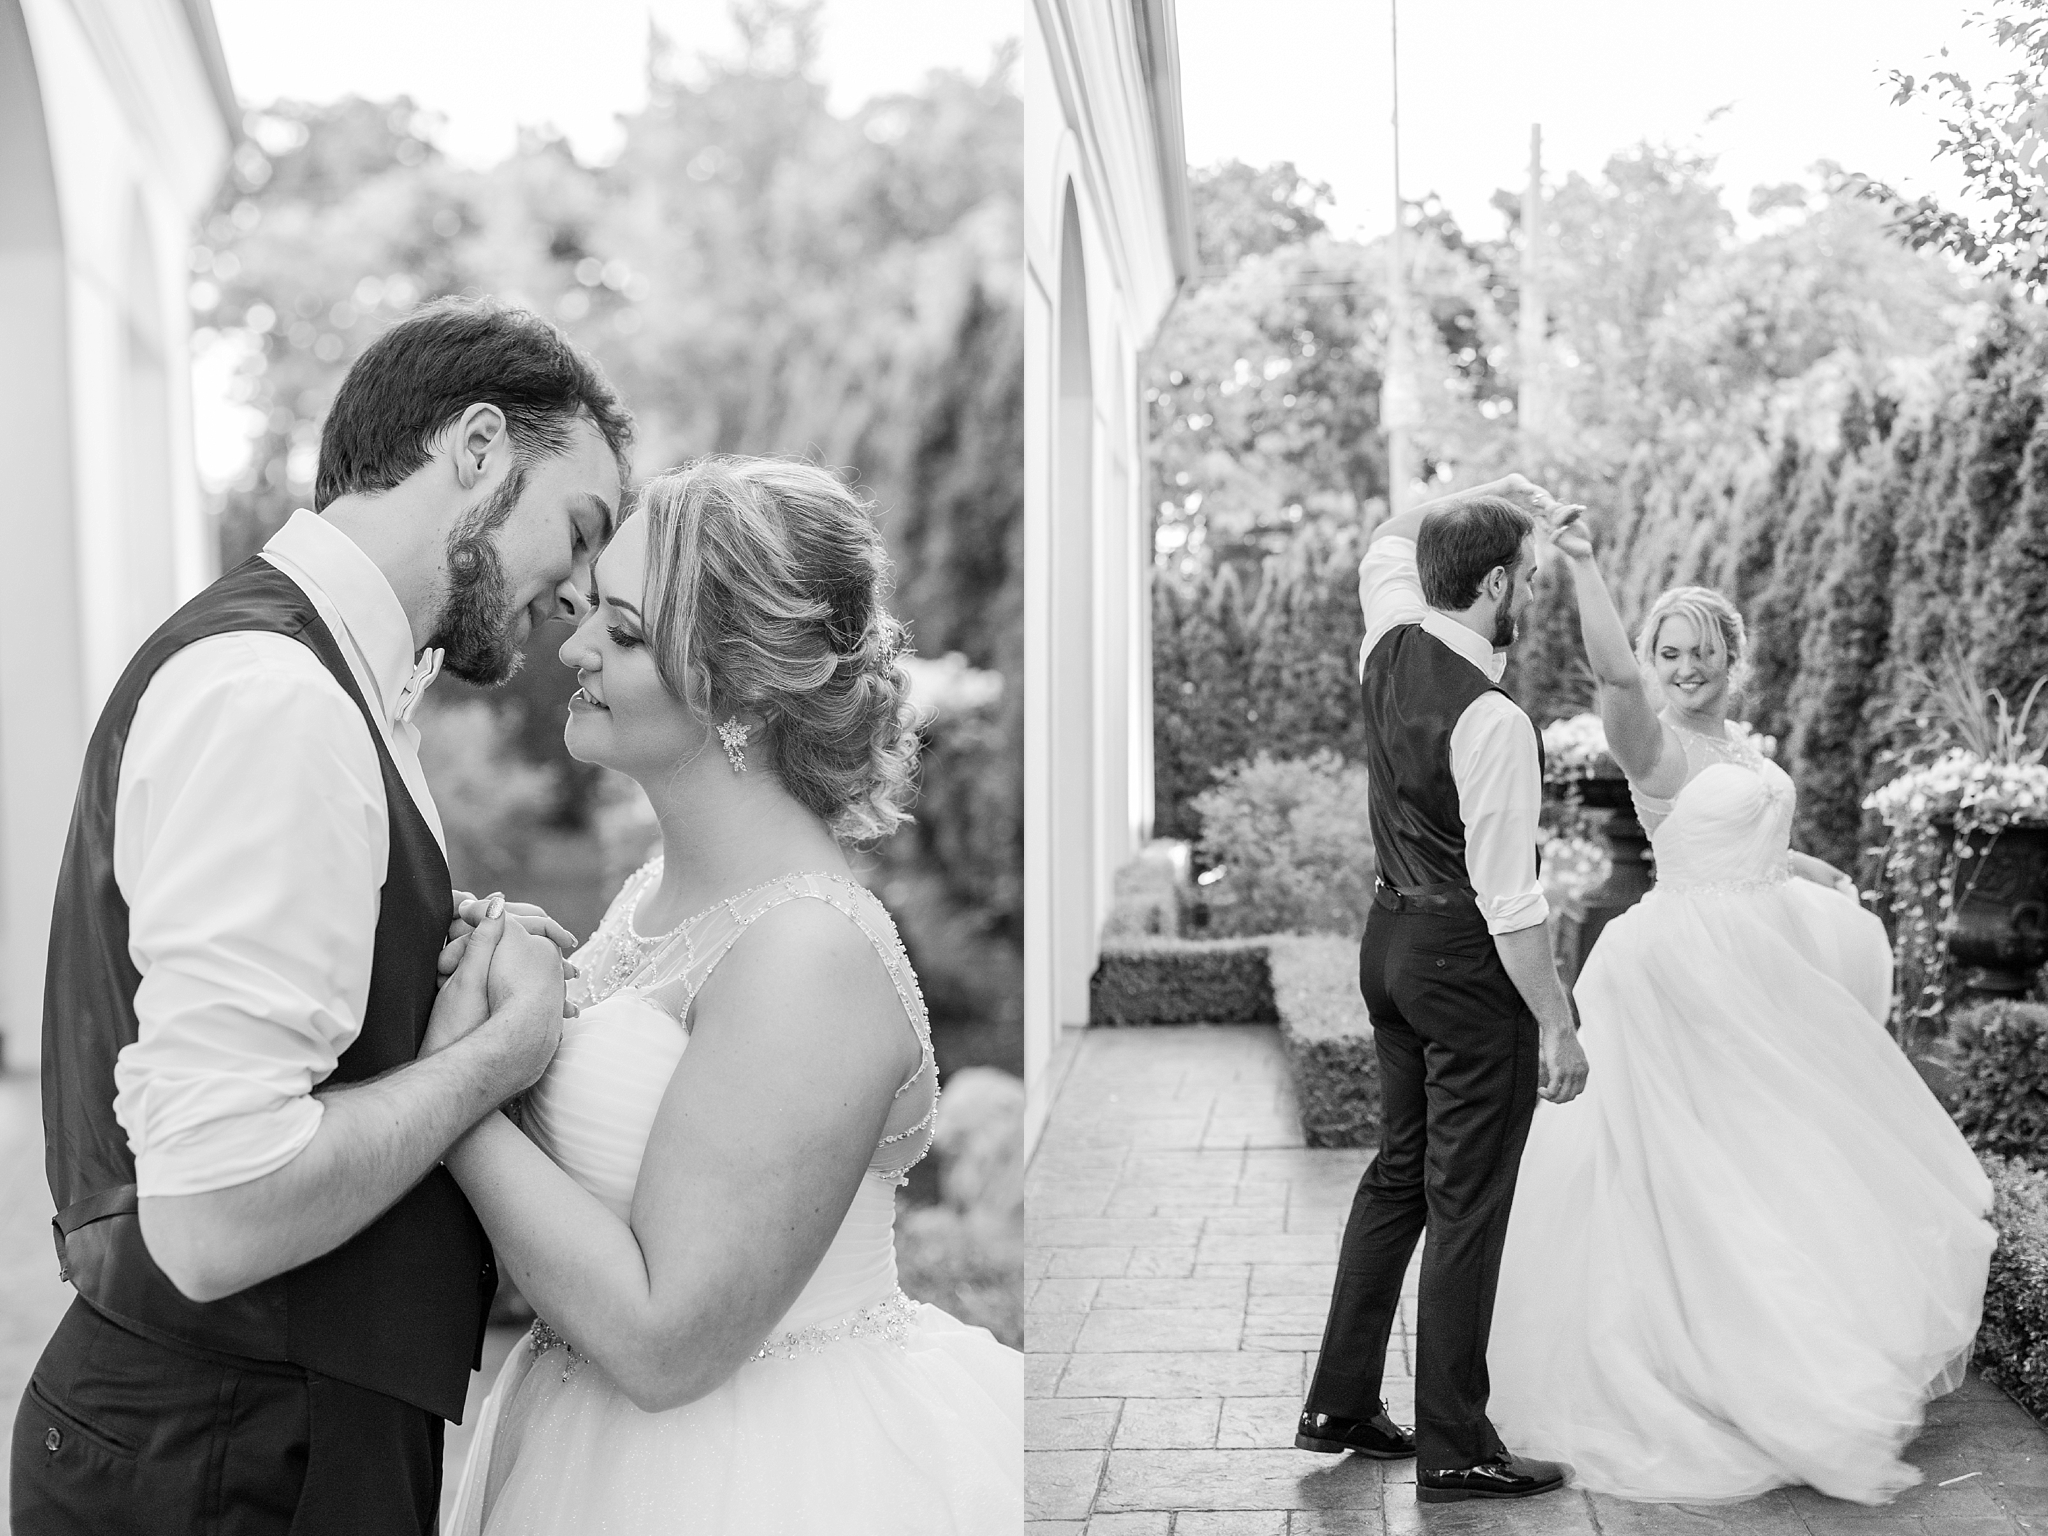 romantic-artful-candid-wedding-photos-in-detroit-lansing-ann-arbor-northern-michigan-and-chicago-by-courtney-carolyn-photography_0020.jpg